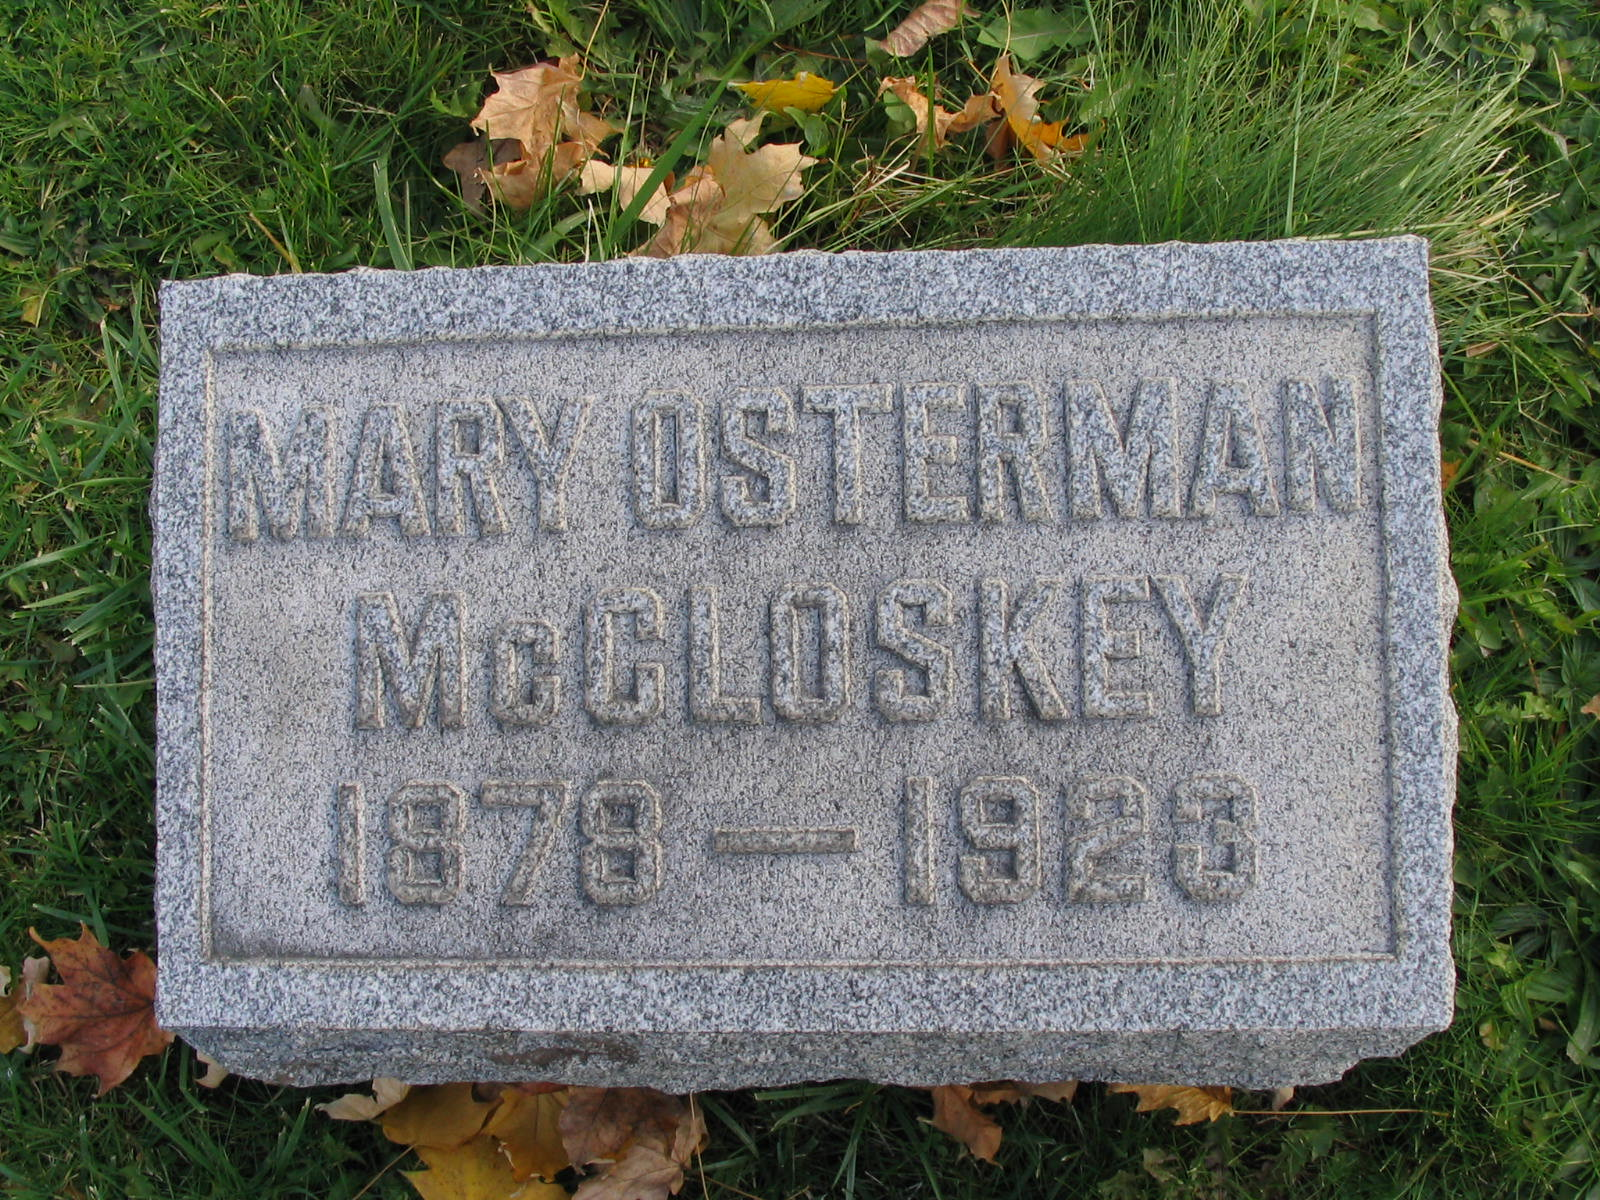 Celia Mary Osterman